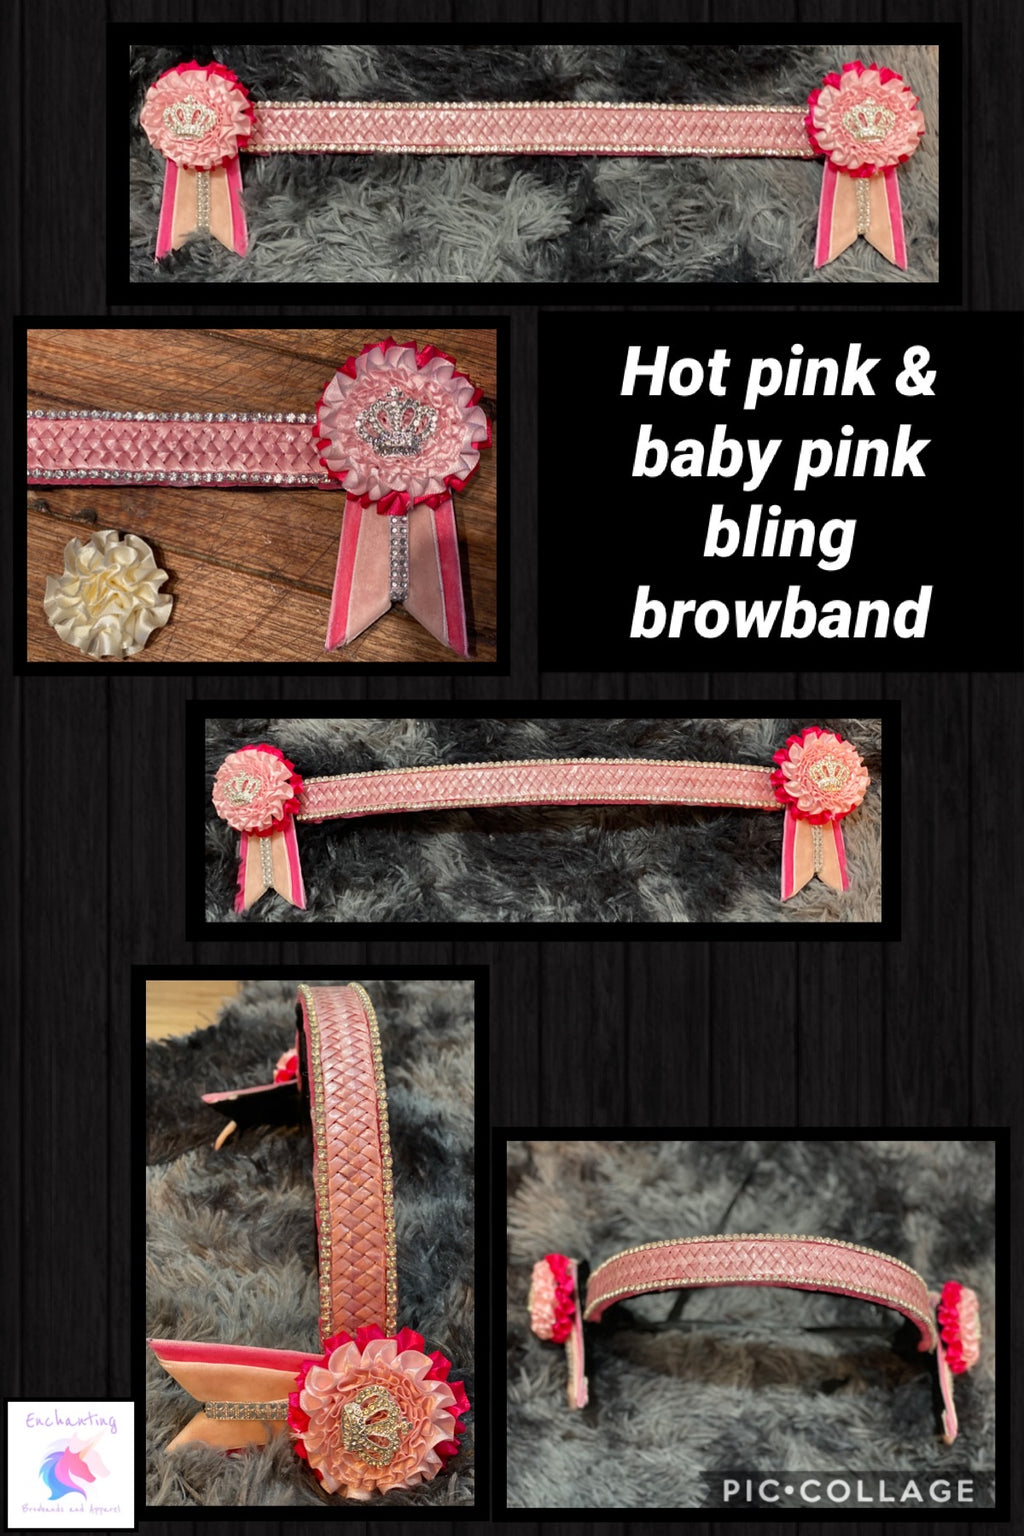 Hot pink & baby pink bling browband